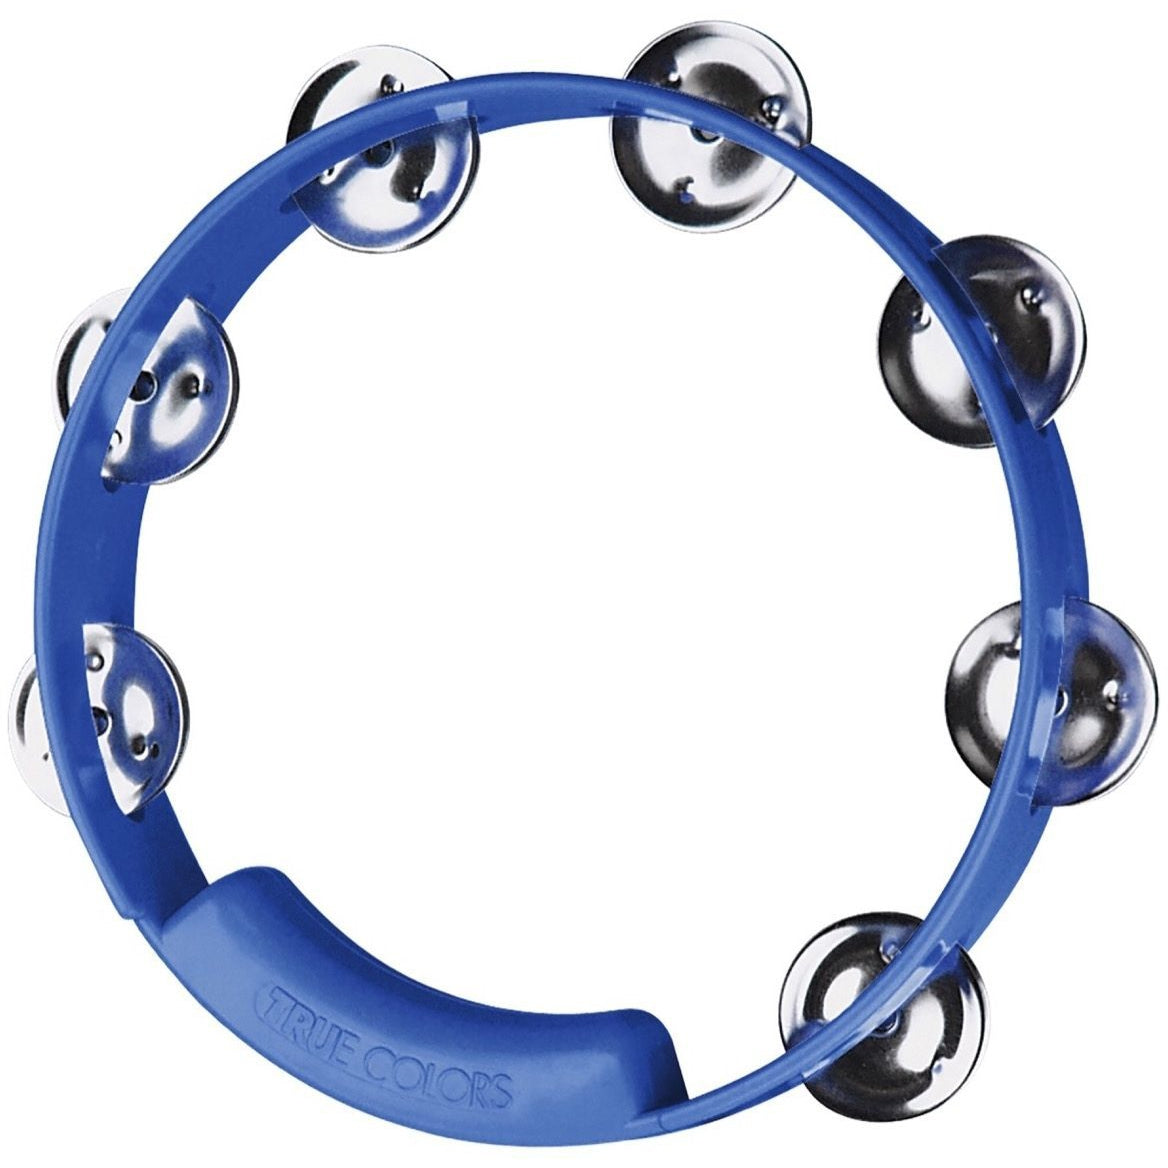 Rhythm Tech True Colors Tambourine (8 Inch, Single Row), Blue, 8 Inch